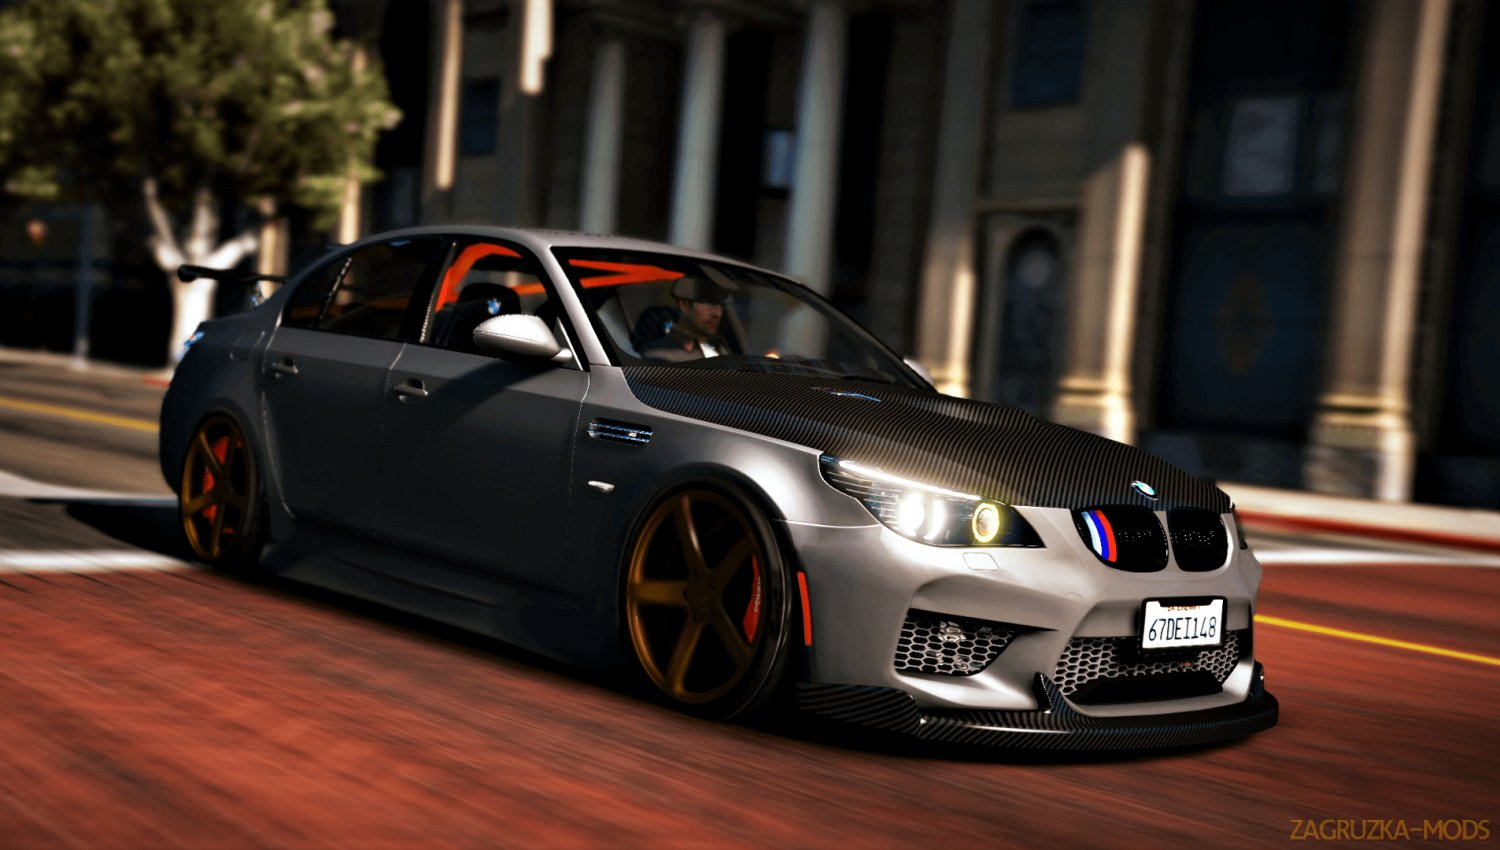 BMW M5 E60 Tuning Exterior v1.1 for GTA 5